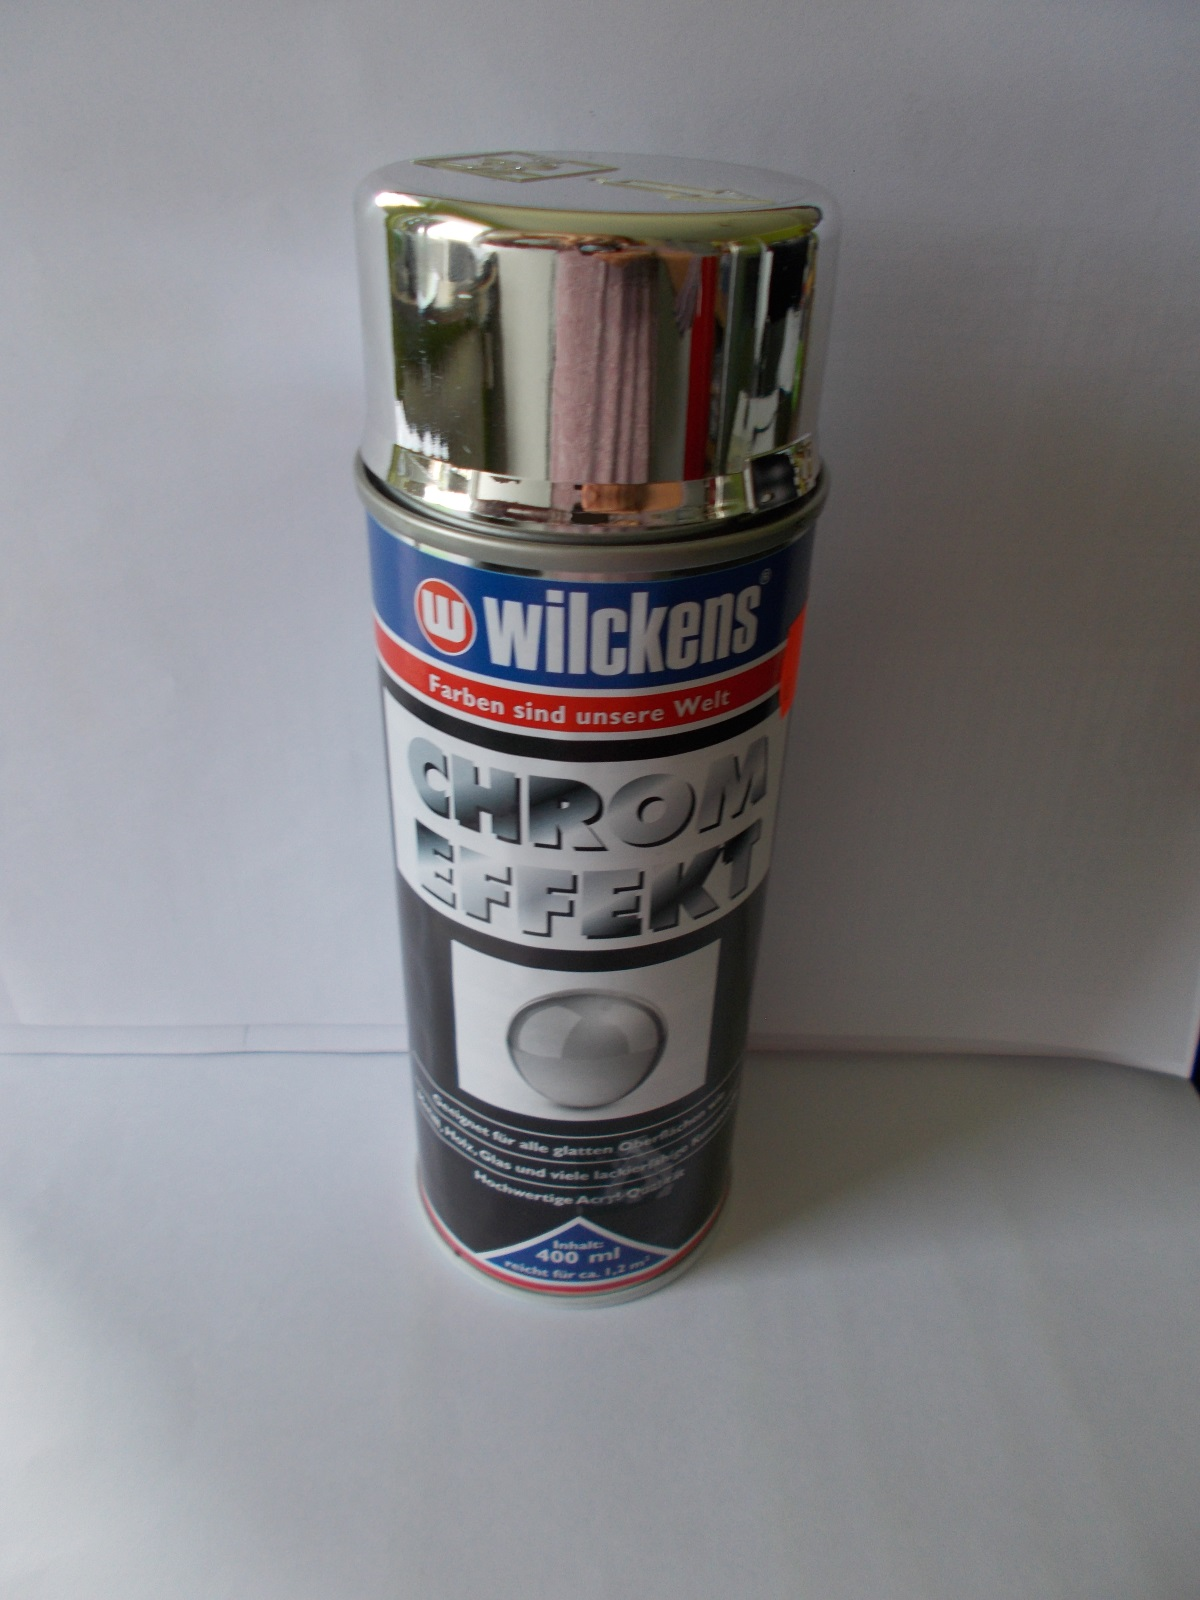 Wilckens Spray 400 ml Chrom Effekt, Effektlack, Metall, Holz, Glas, Sprühdose